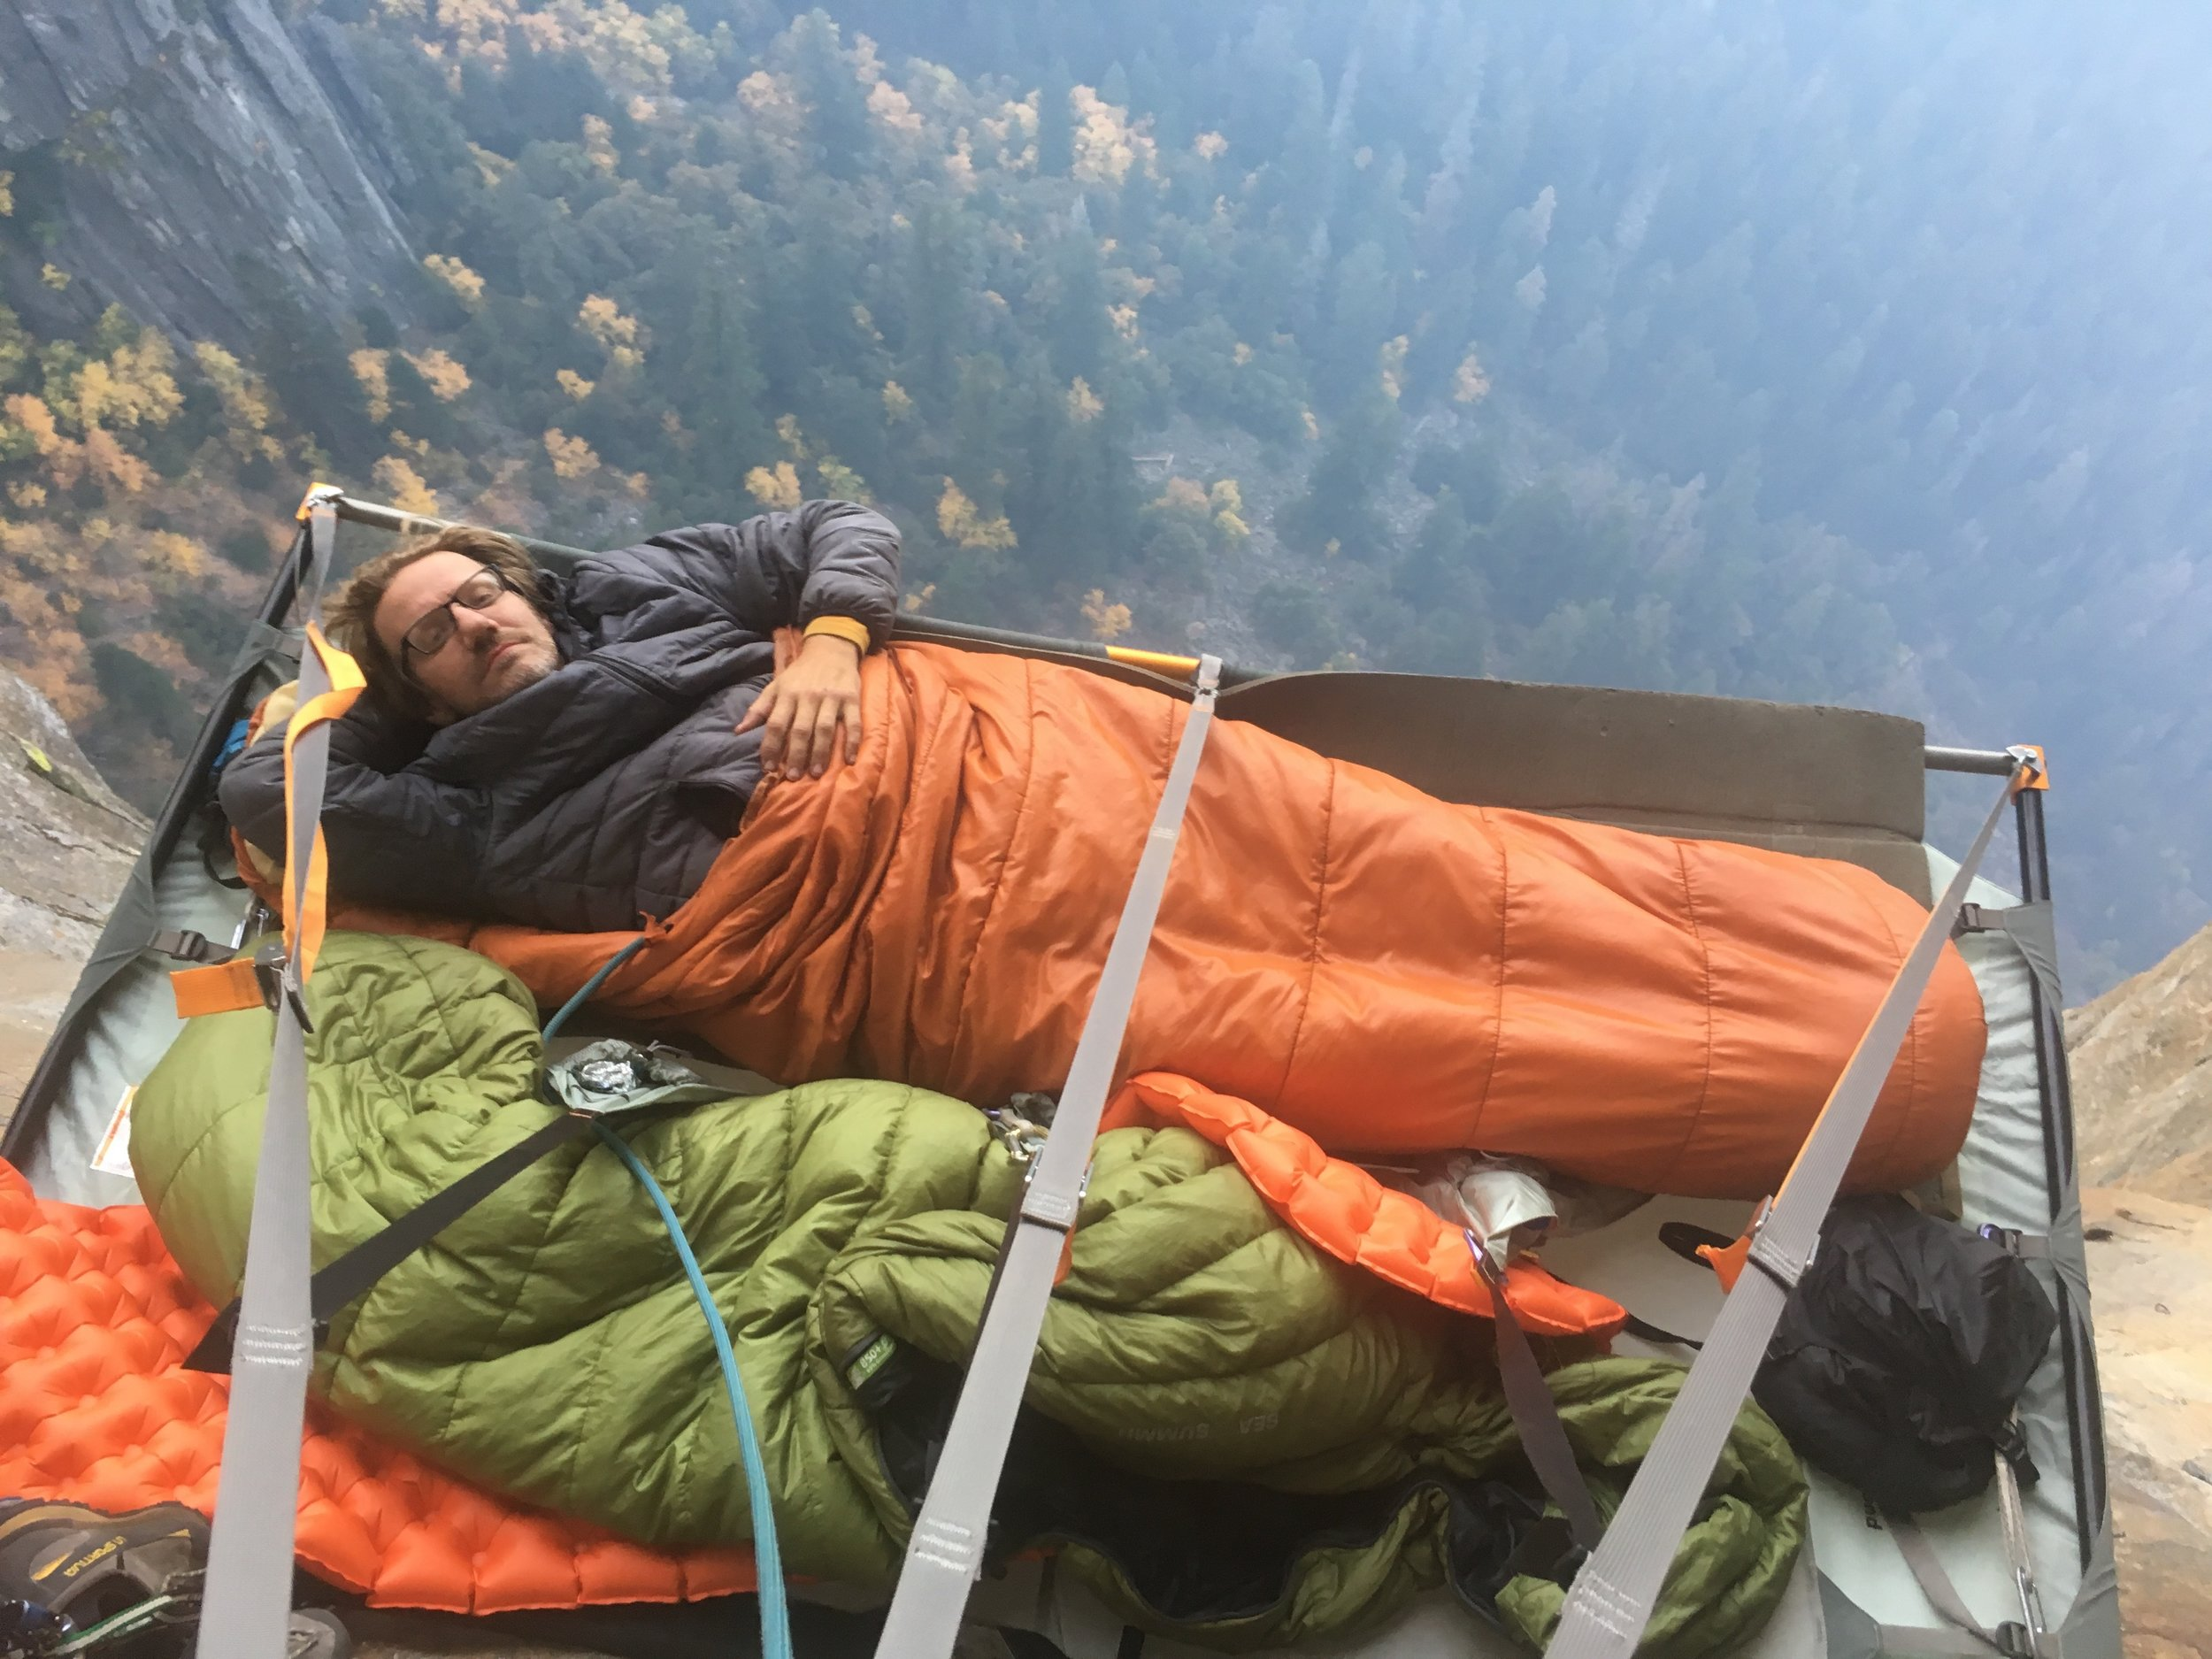 before sleeping on the side of a cliff.